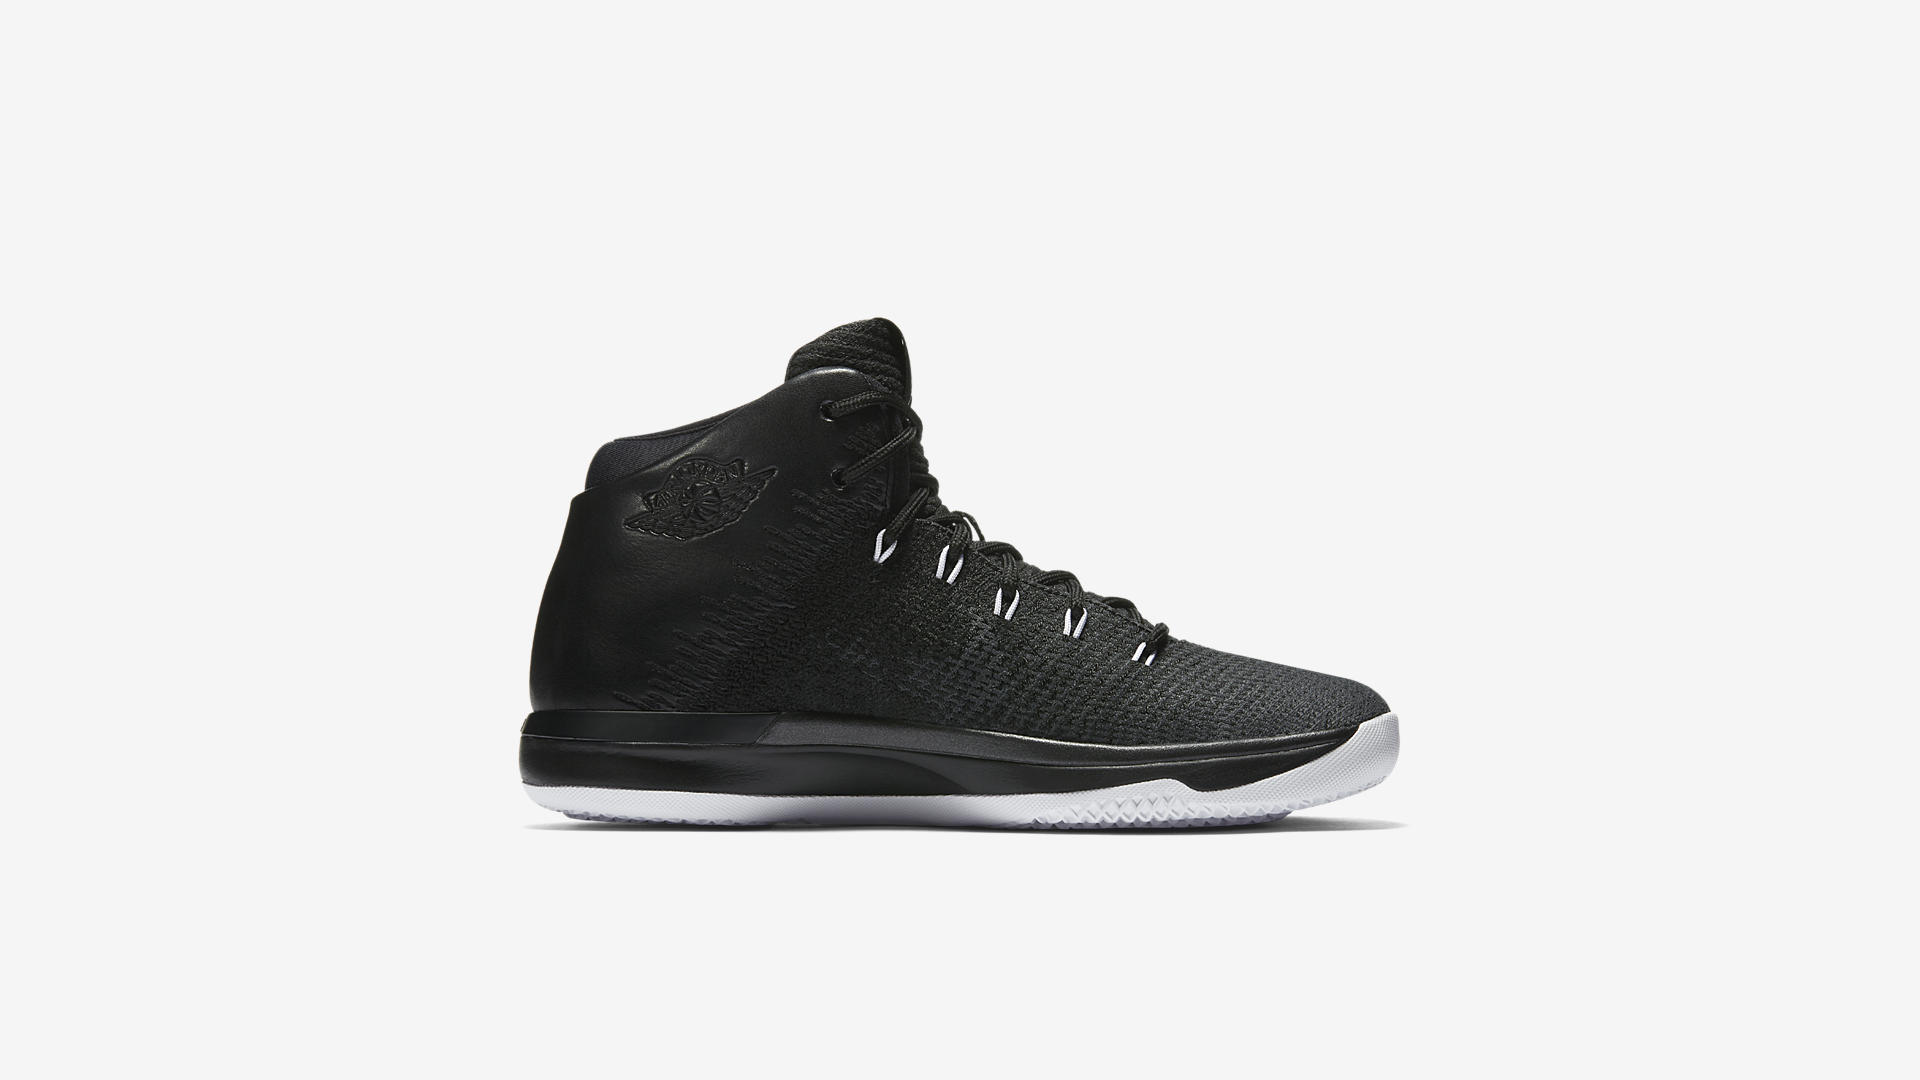 Air Jordan 31 Black Cat 845037 010 4